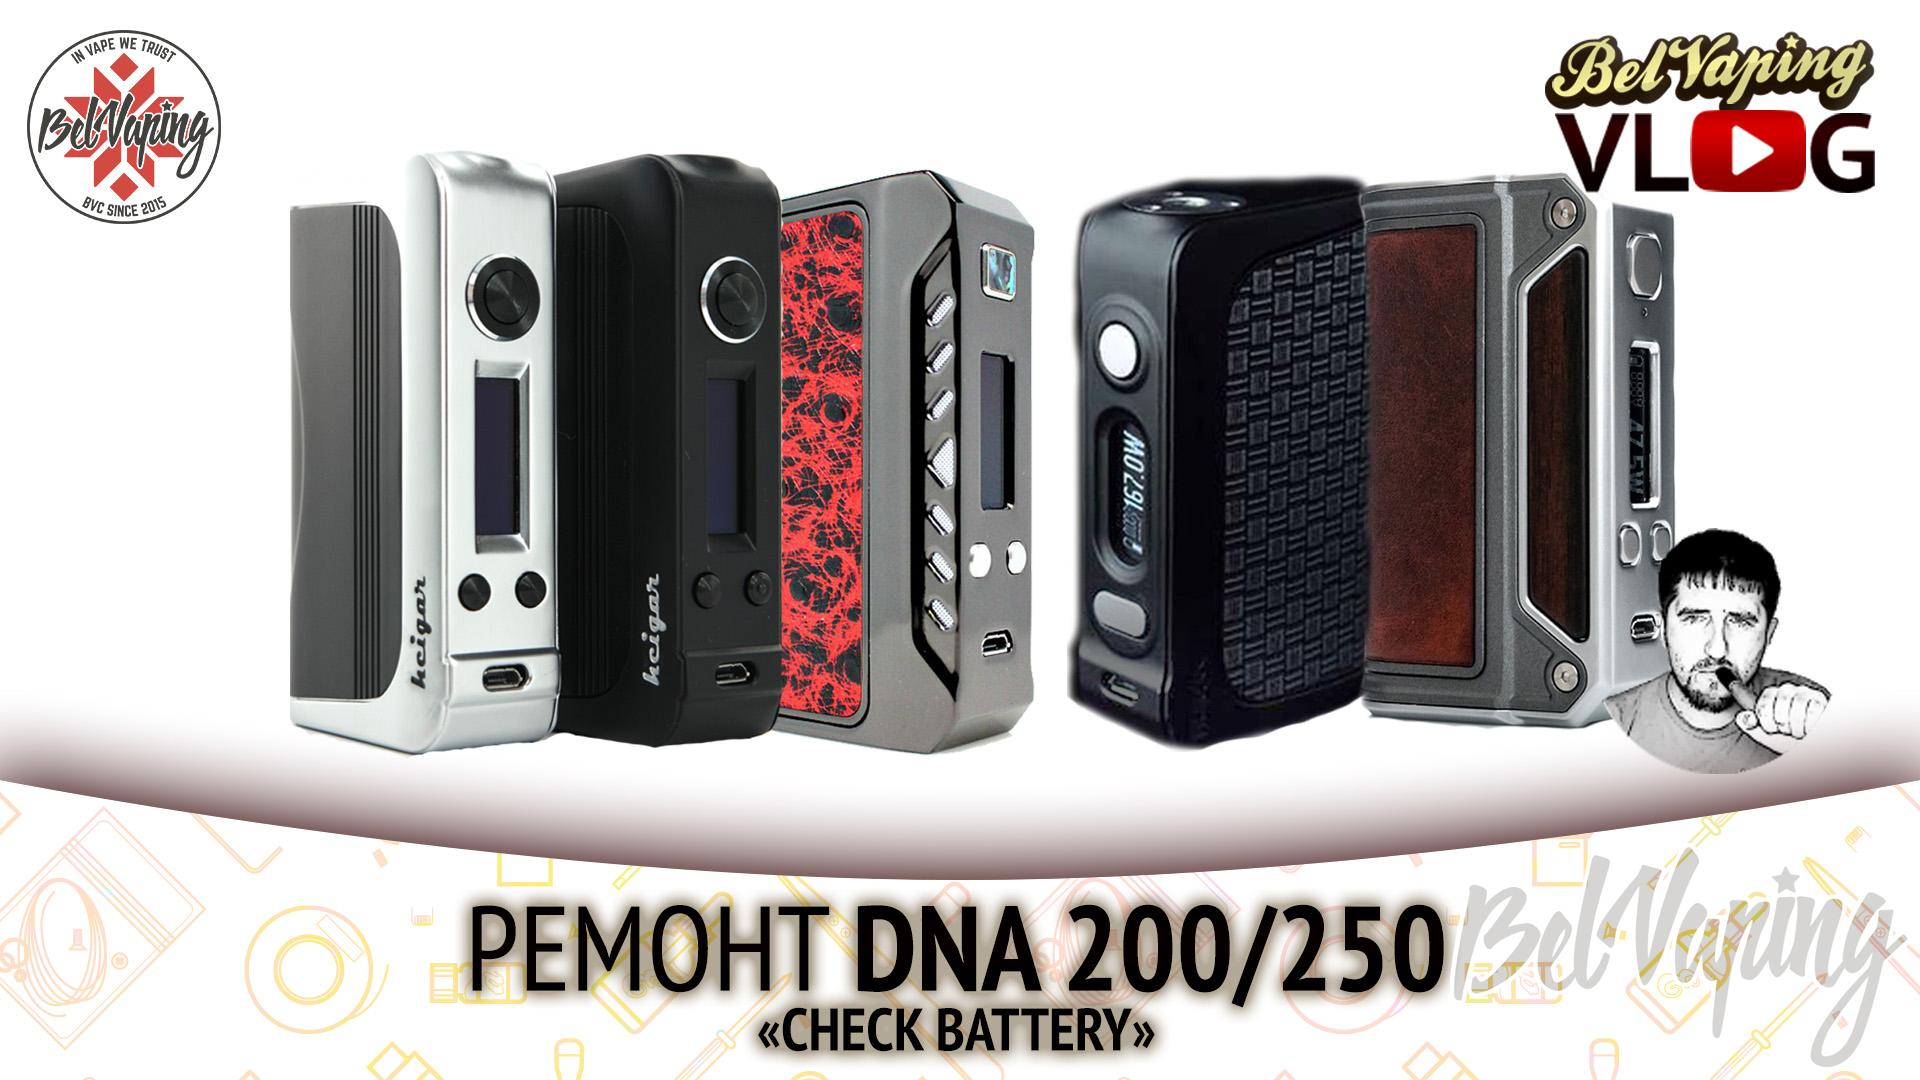 Ремонт платы DNA 200 и DNA 250. Check battery